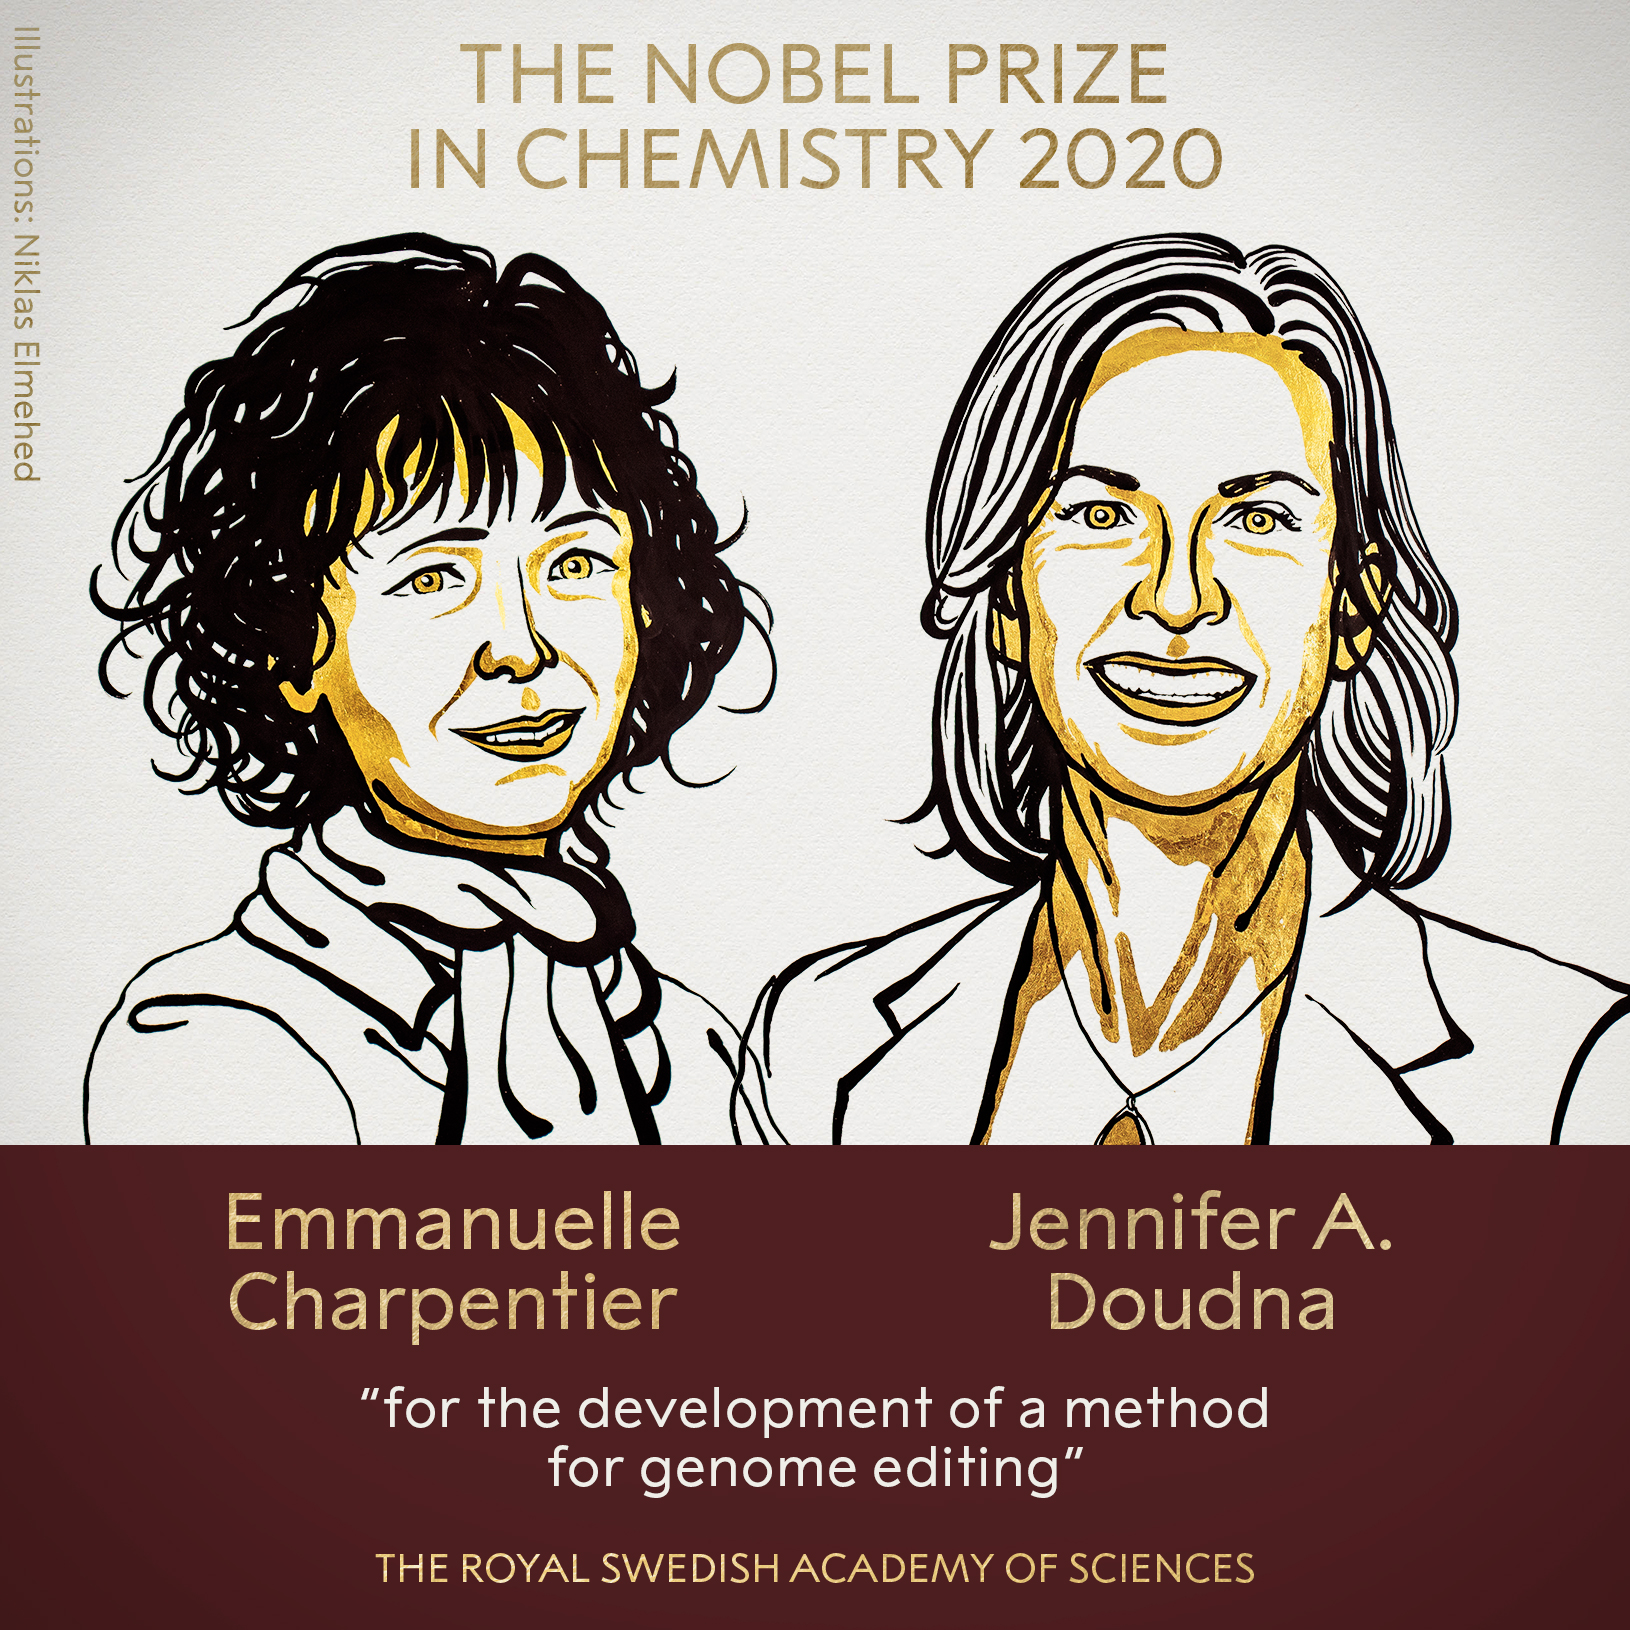 Can Nobel Prizes and other scientific awards further women's progress in STEM fields?